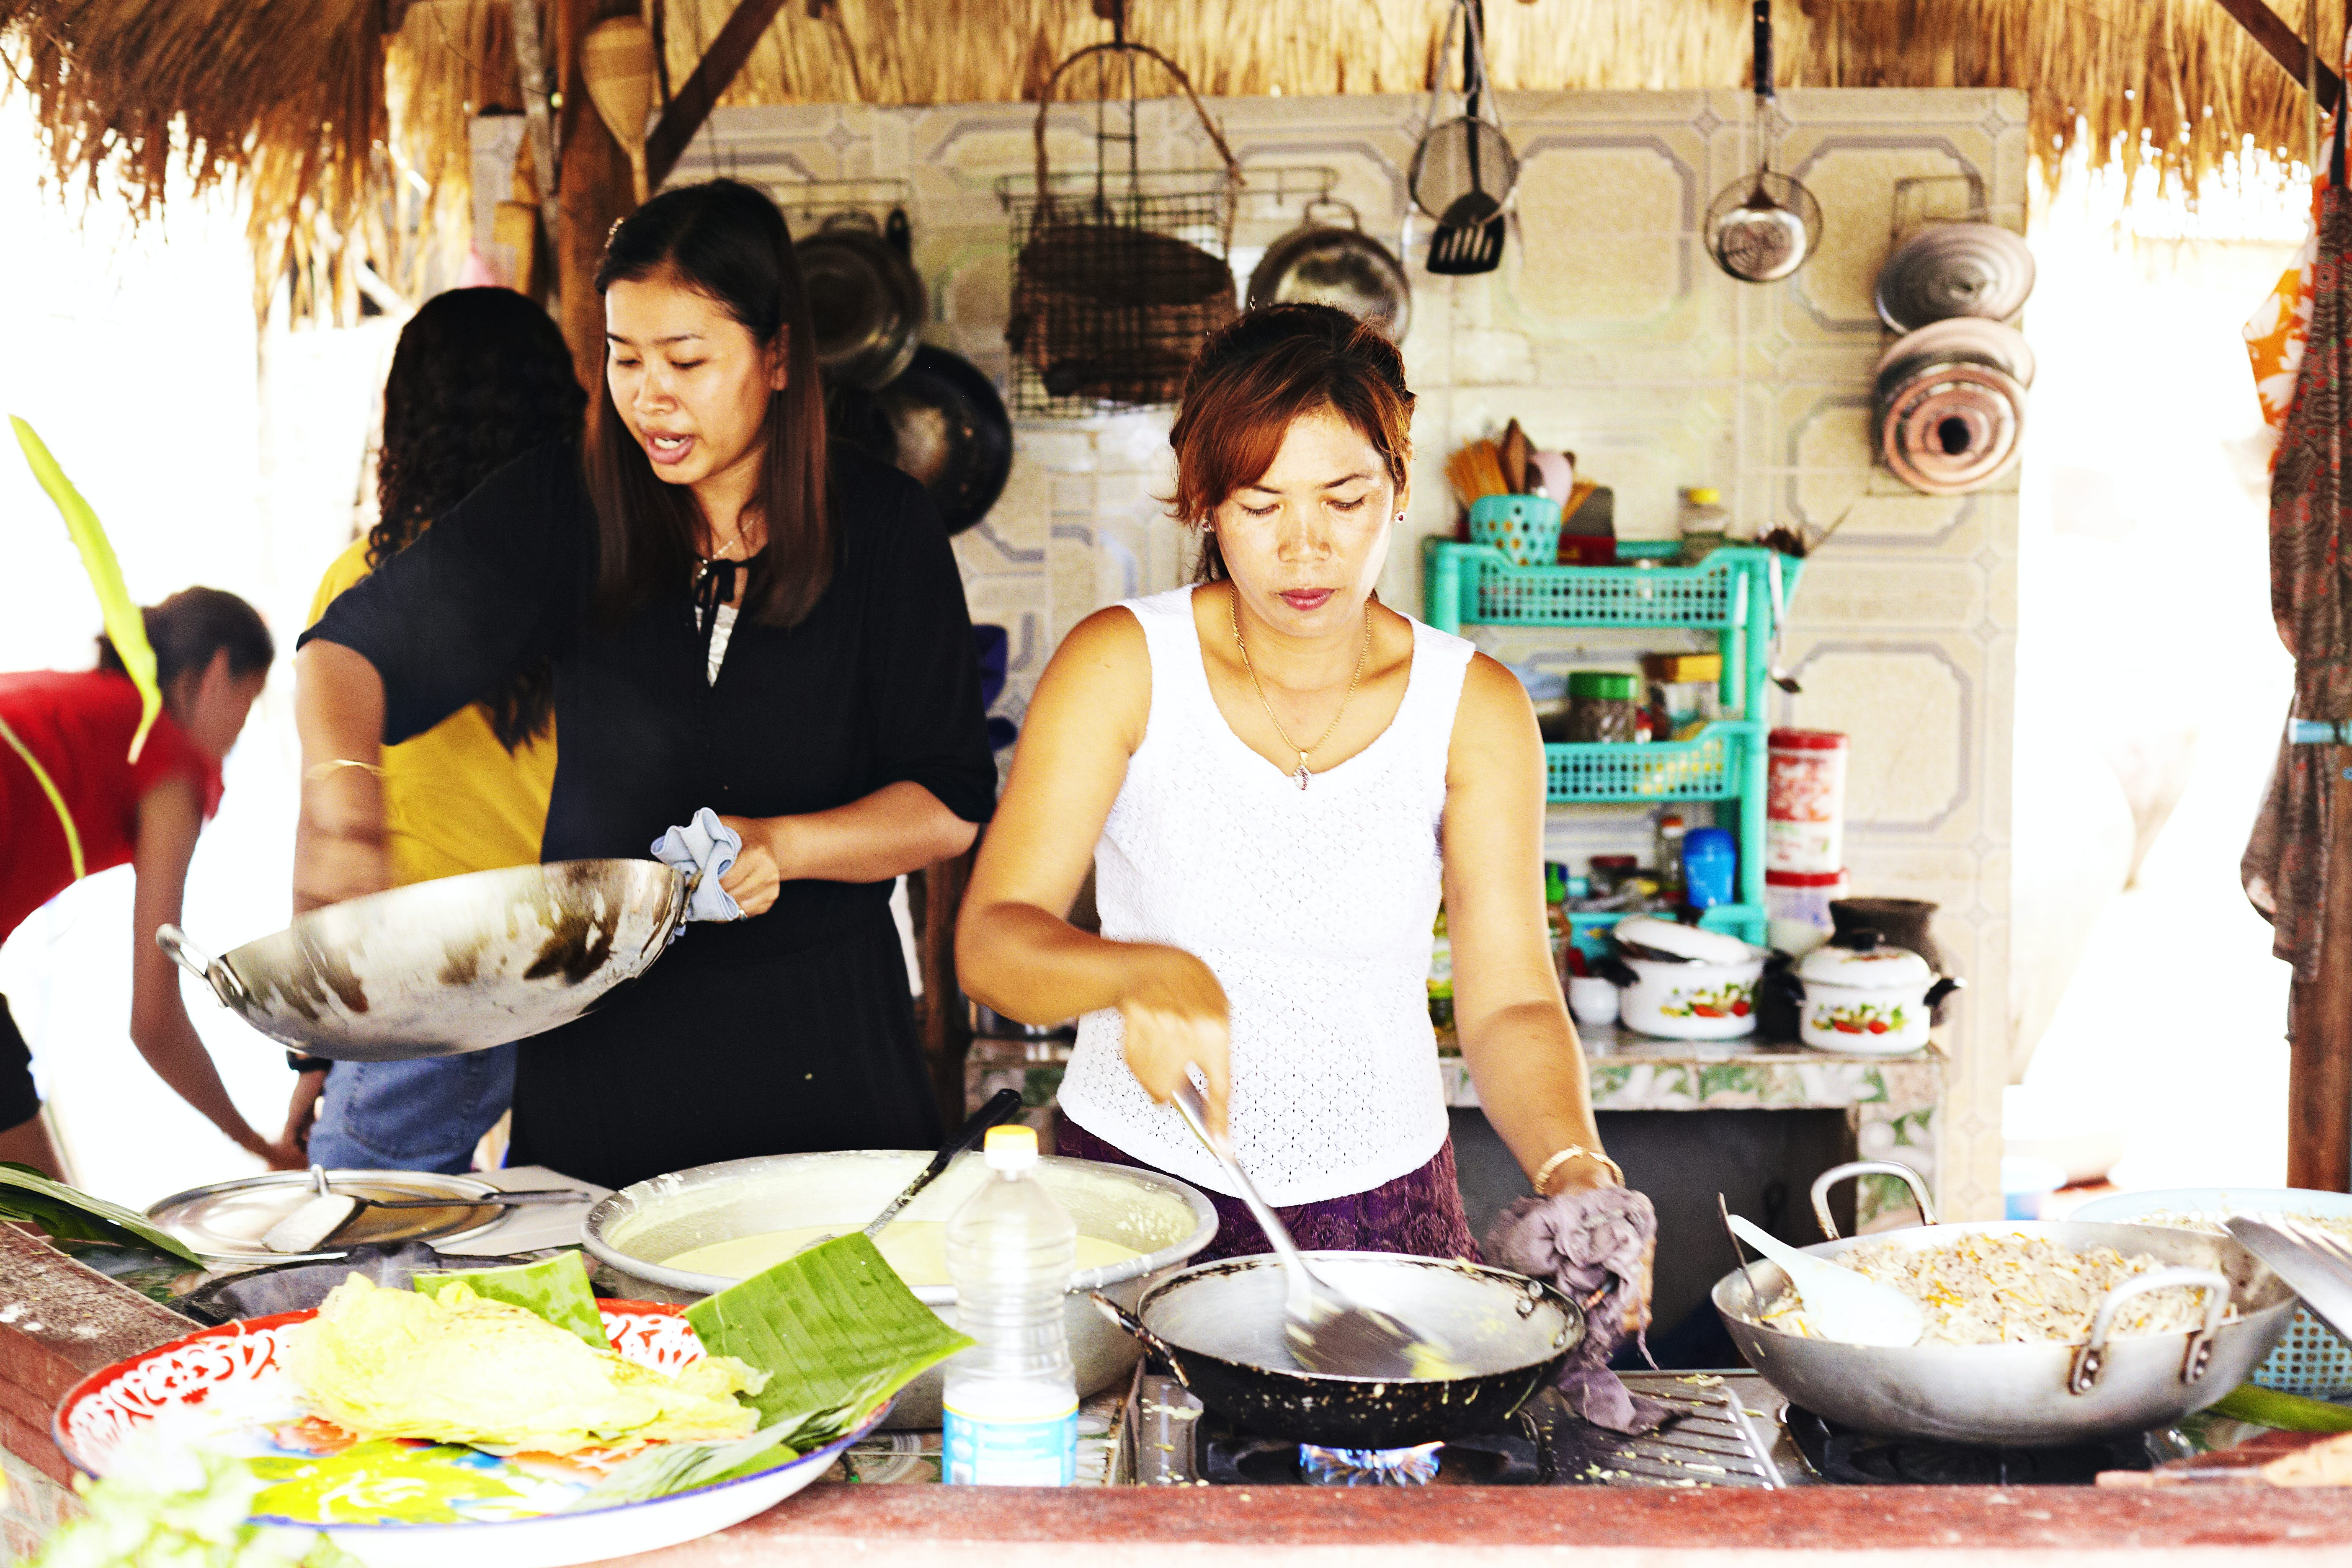 A group of women are cooking up a feast in a homestay. There are many woks on a stove, and behind them there's lots of cookware hanging from the wall, and sitting on a counter.